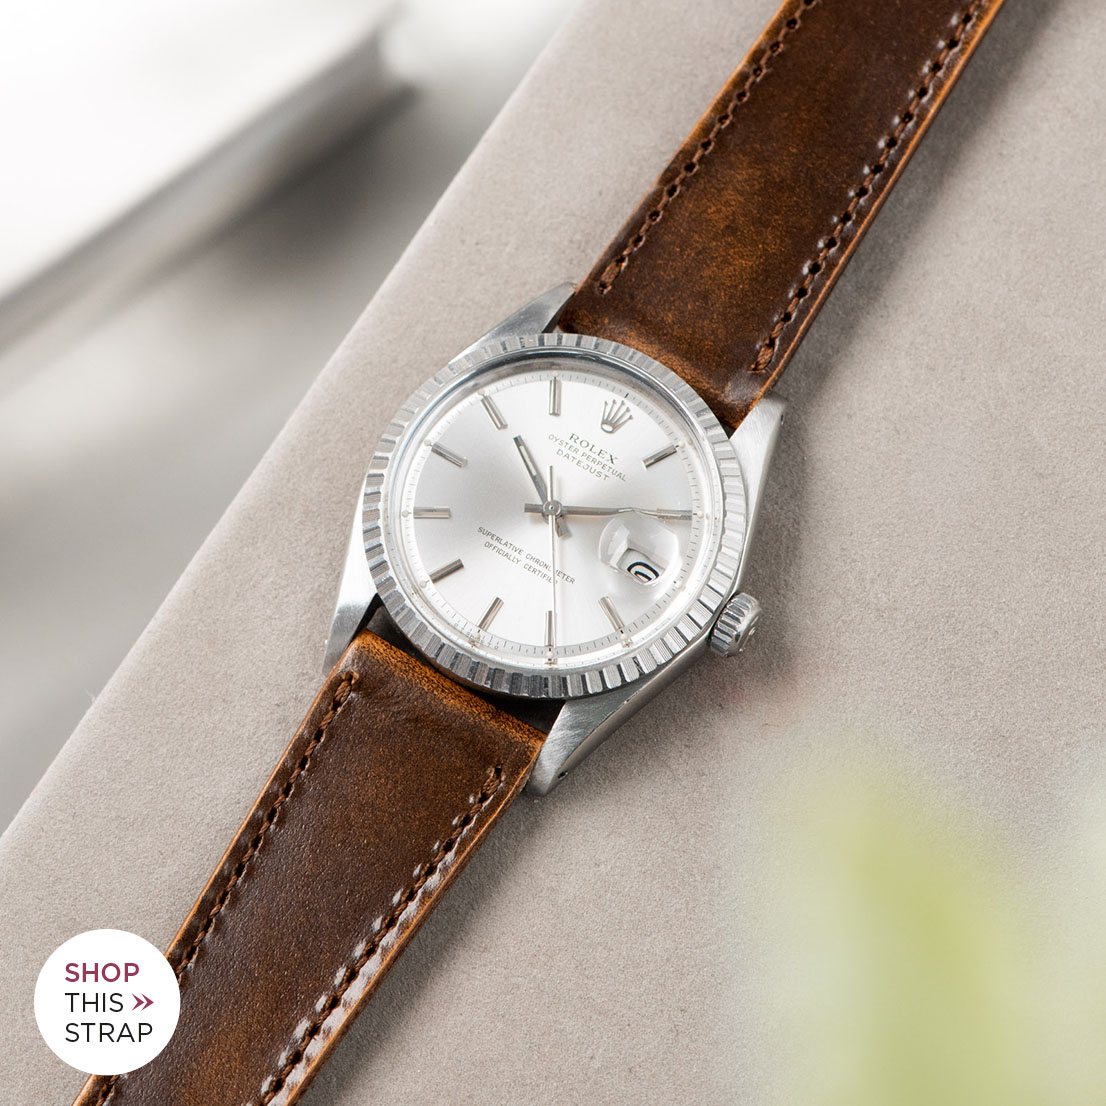 Bulang and sons_Strap Guide_Rolex Datejust Silverdial 1601 1603 1600 1630_DEGRADE HONEY BROWN LEATHER WATCH STRAP